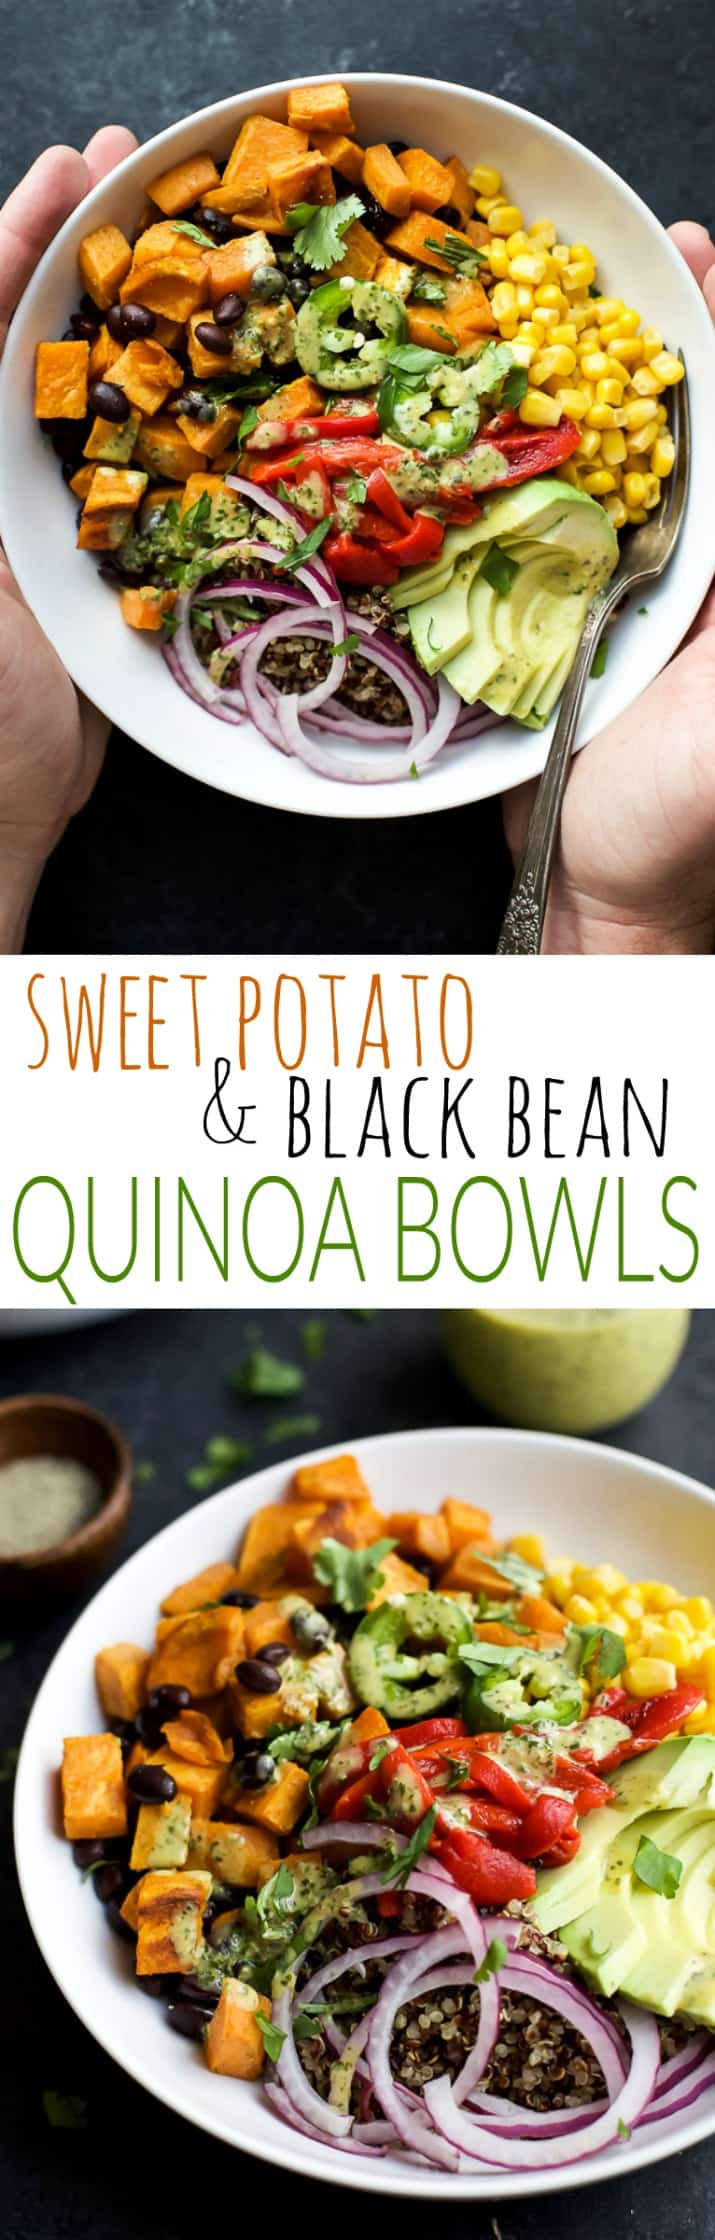 Easy SWEET POTATO BLACK BEAN QUINOA BOWLS topped with a zesty Cilantro Dressing you'll want to pour all over. A fresh vegetarian meal that will satisfy even those meat lovers! | joyfulhealthyeats.com #glutenfree